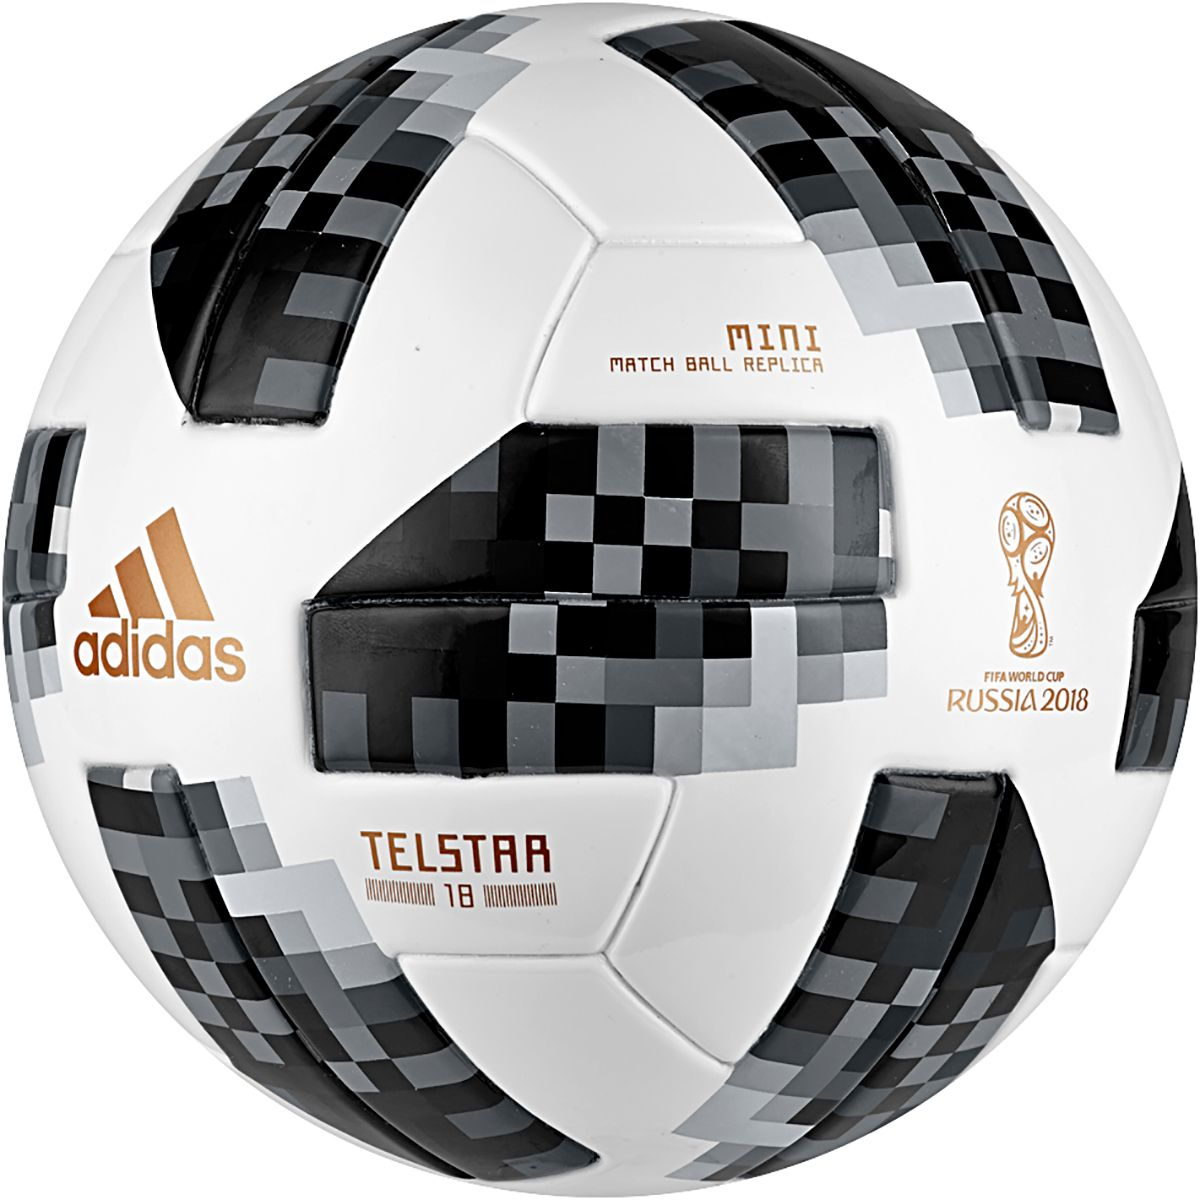 Top Football Ball World Cup 2018 -   Pictures_198559 .com/is/image/dkscdn/17ADIUWC18GPMNWHBSCB_White_Black_is/